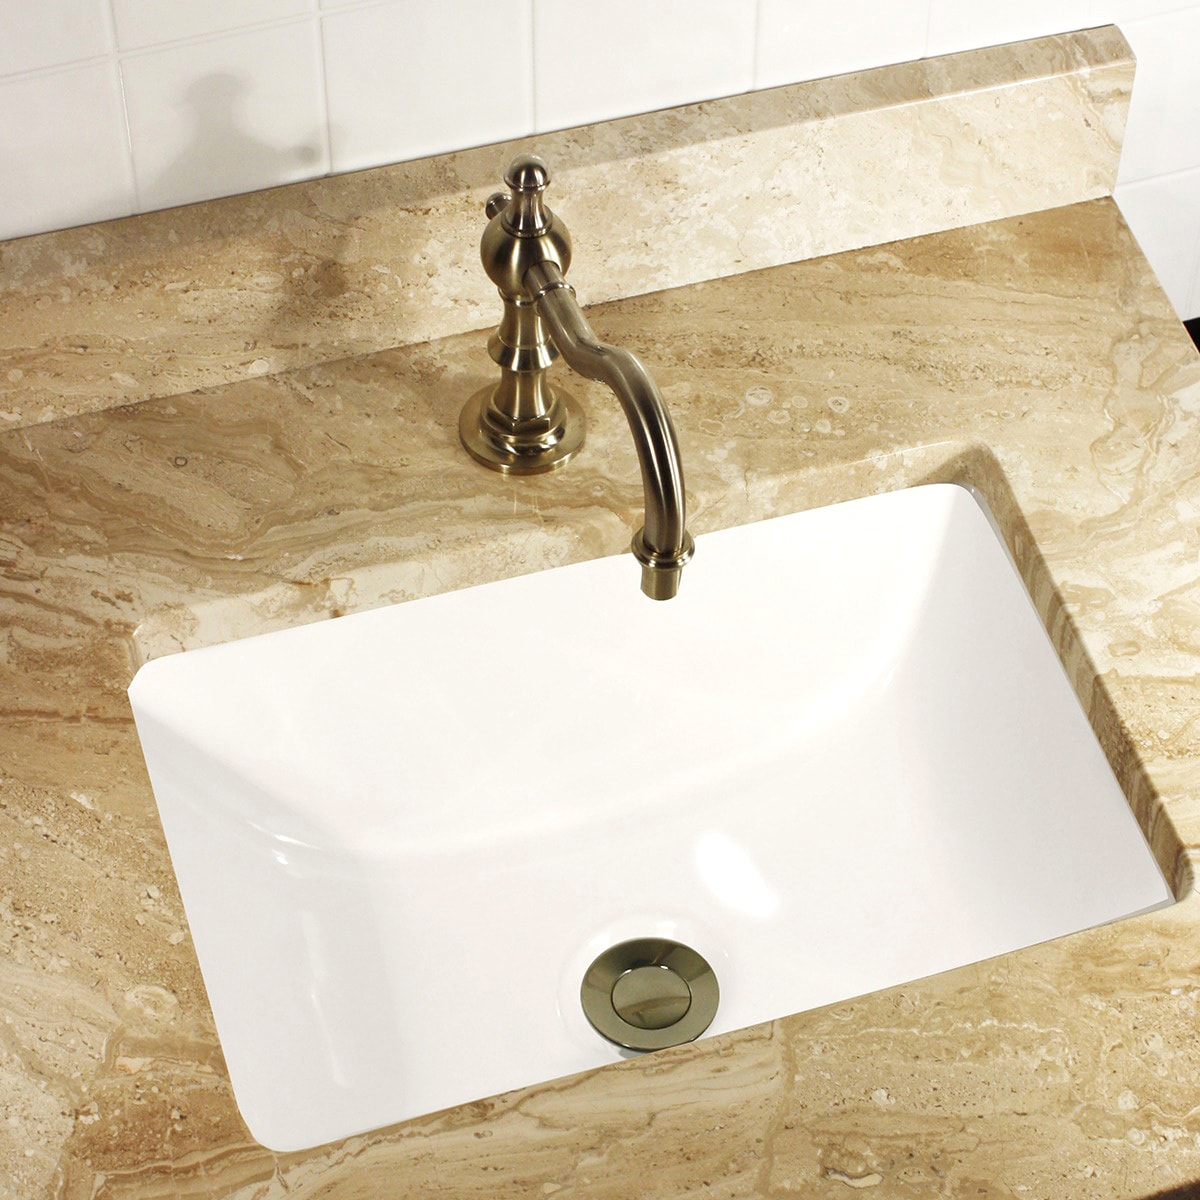 Rectangular Bathroom Sinks Undermount : ... Rectangle Ceramic Undermount WHITE Vanity Sink Bathroom SINKS eBay